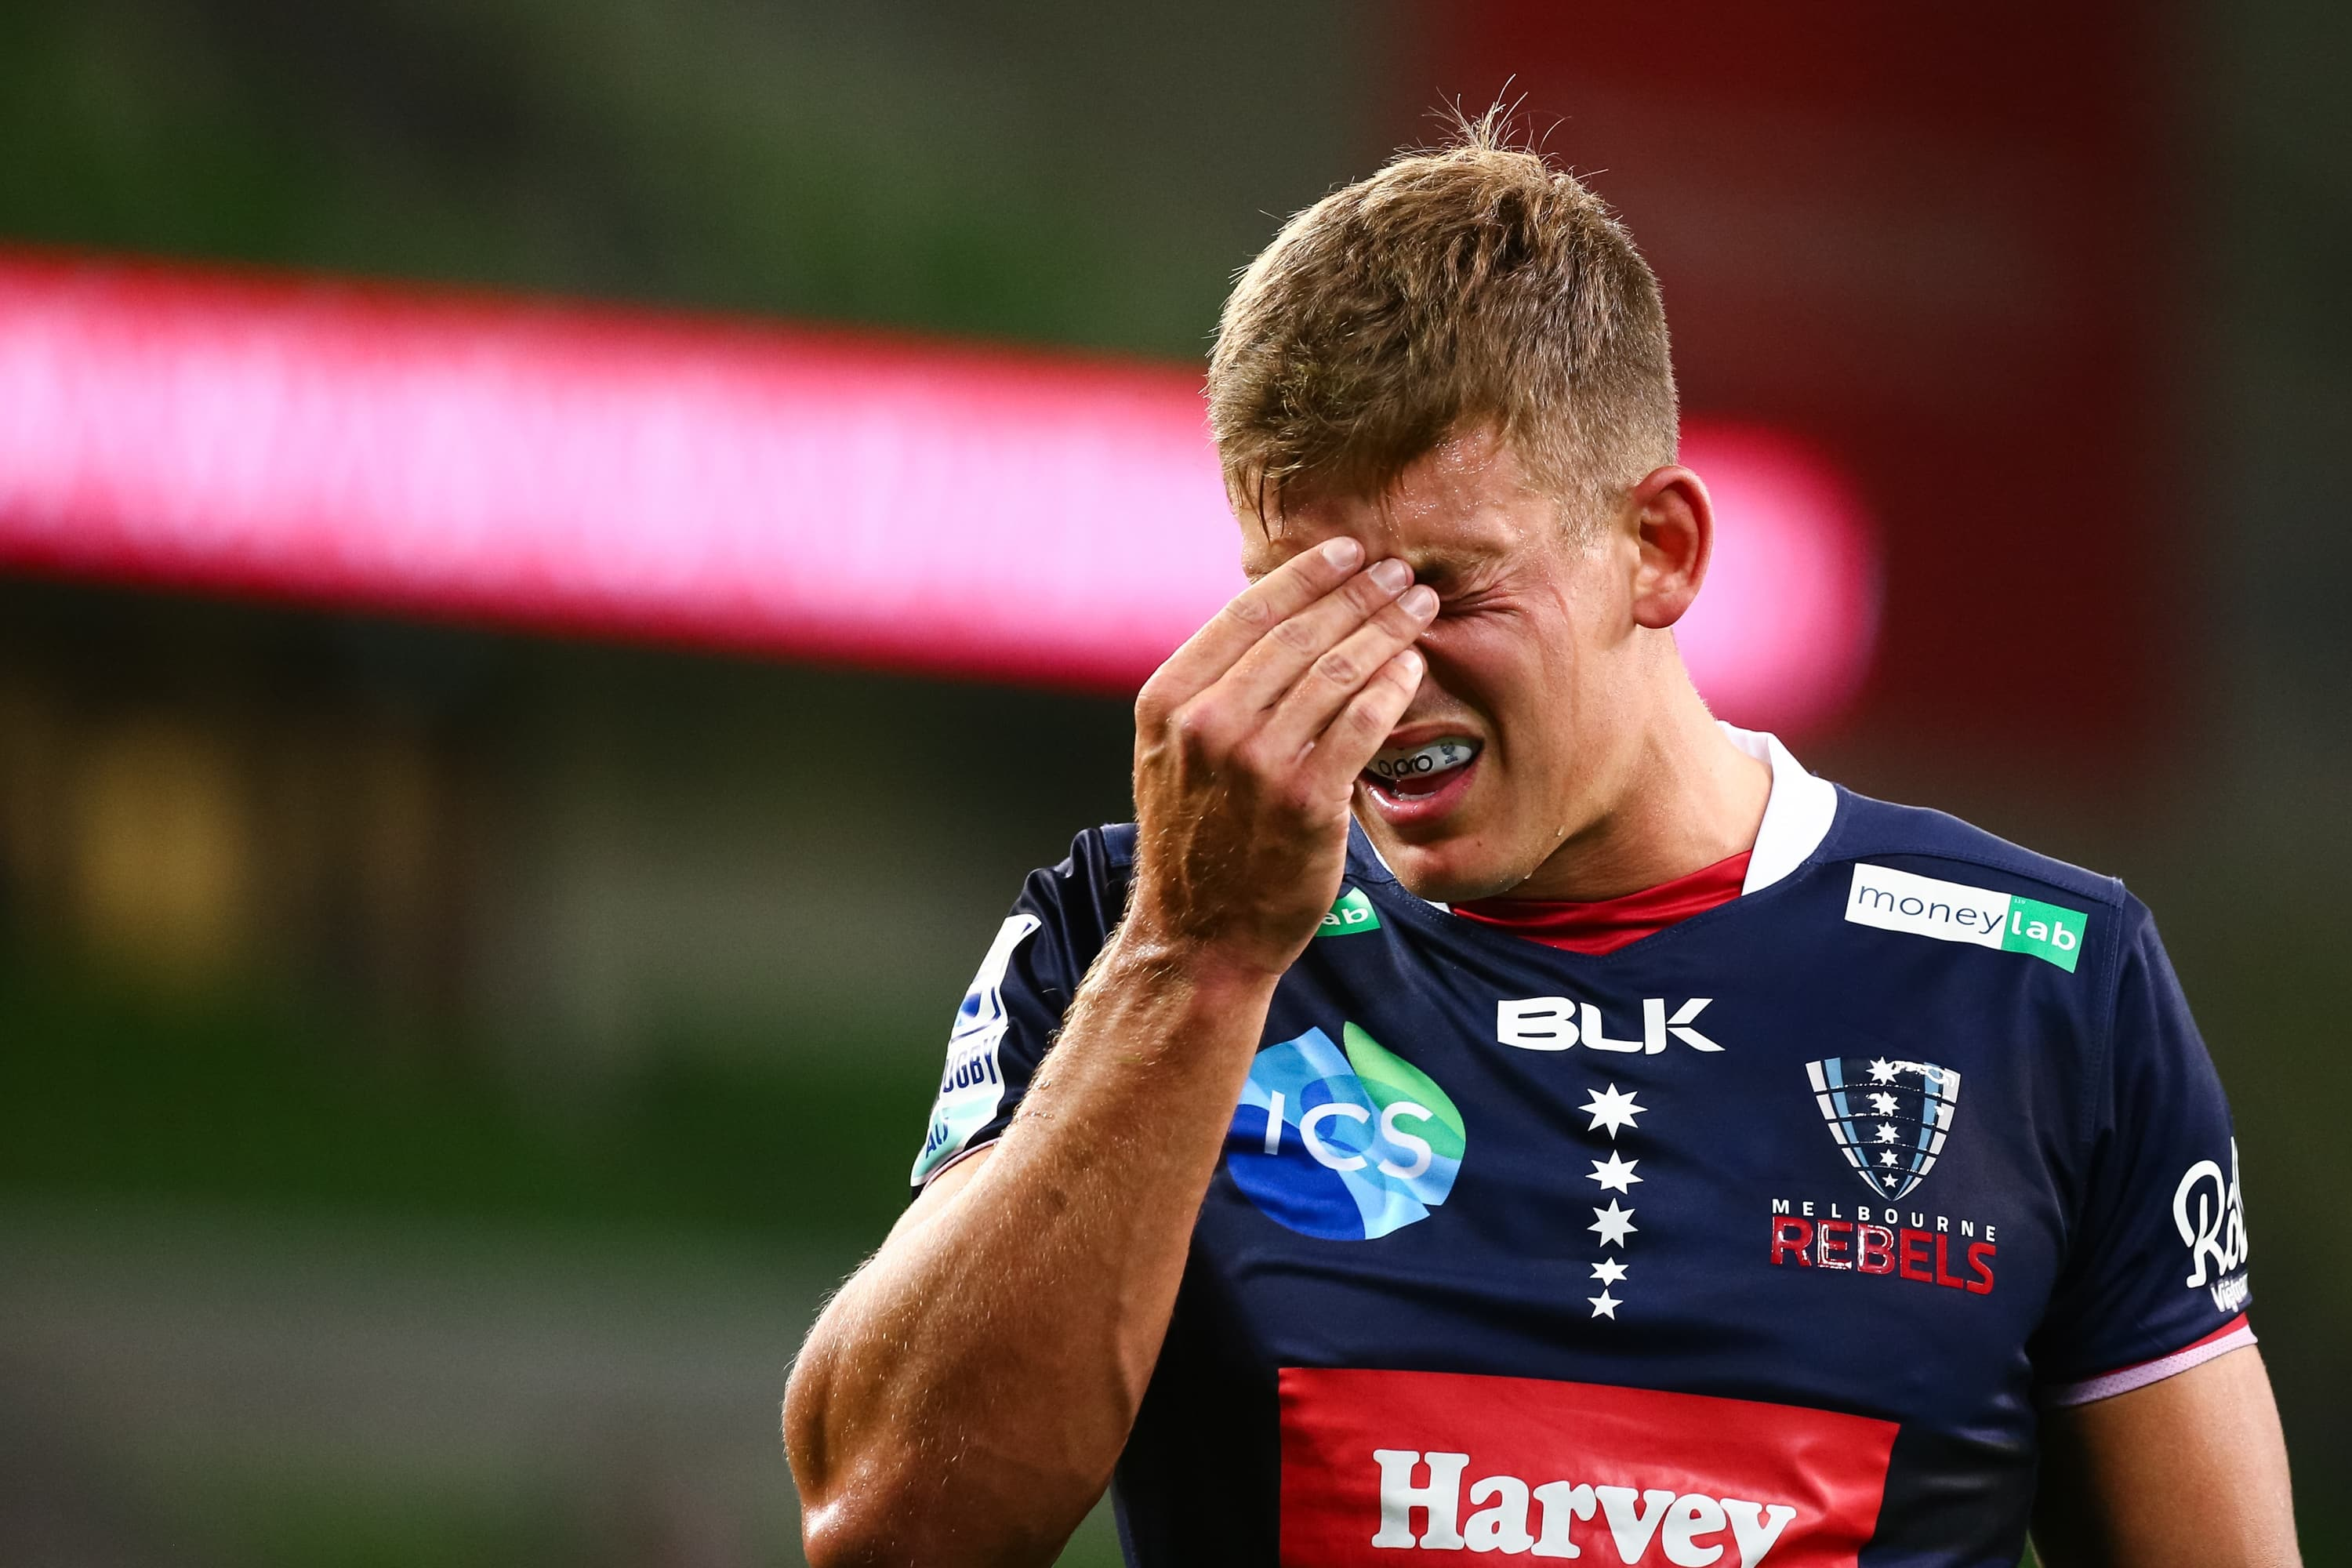 MELBOURNE, AUSTRALIA - APRIL 03: Tom Pincus of the Melbourne Rebels during the round seven Super Rugby AU match between the Melbourne Rebels and Queensland Reds at AAMI Park on April 03, 2021 in Melbourne, Australia. (Photo by Speed Media/Icon Sportswire)